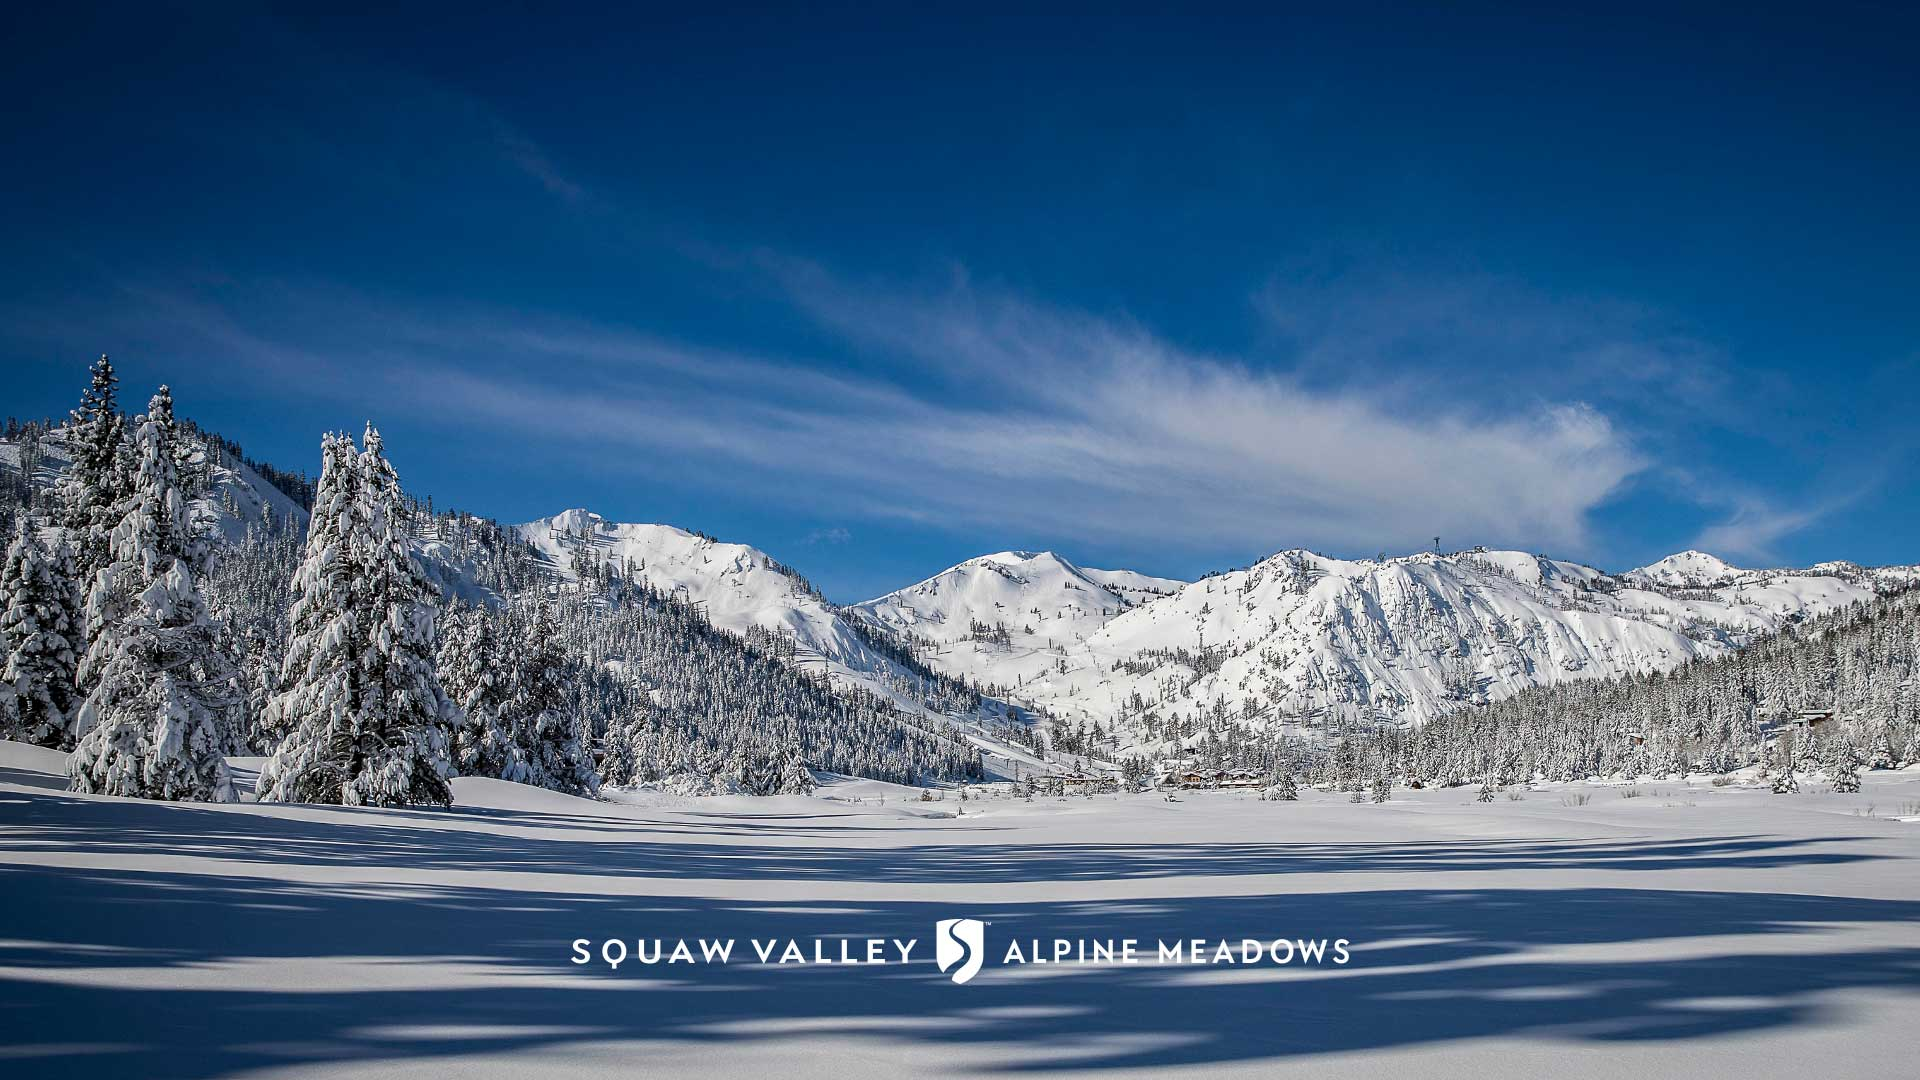 1920x1080 Download Squaw Valley Alpine Meadows Wallpaper | Squaw Alpine